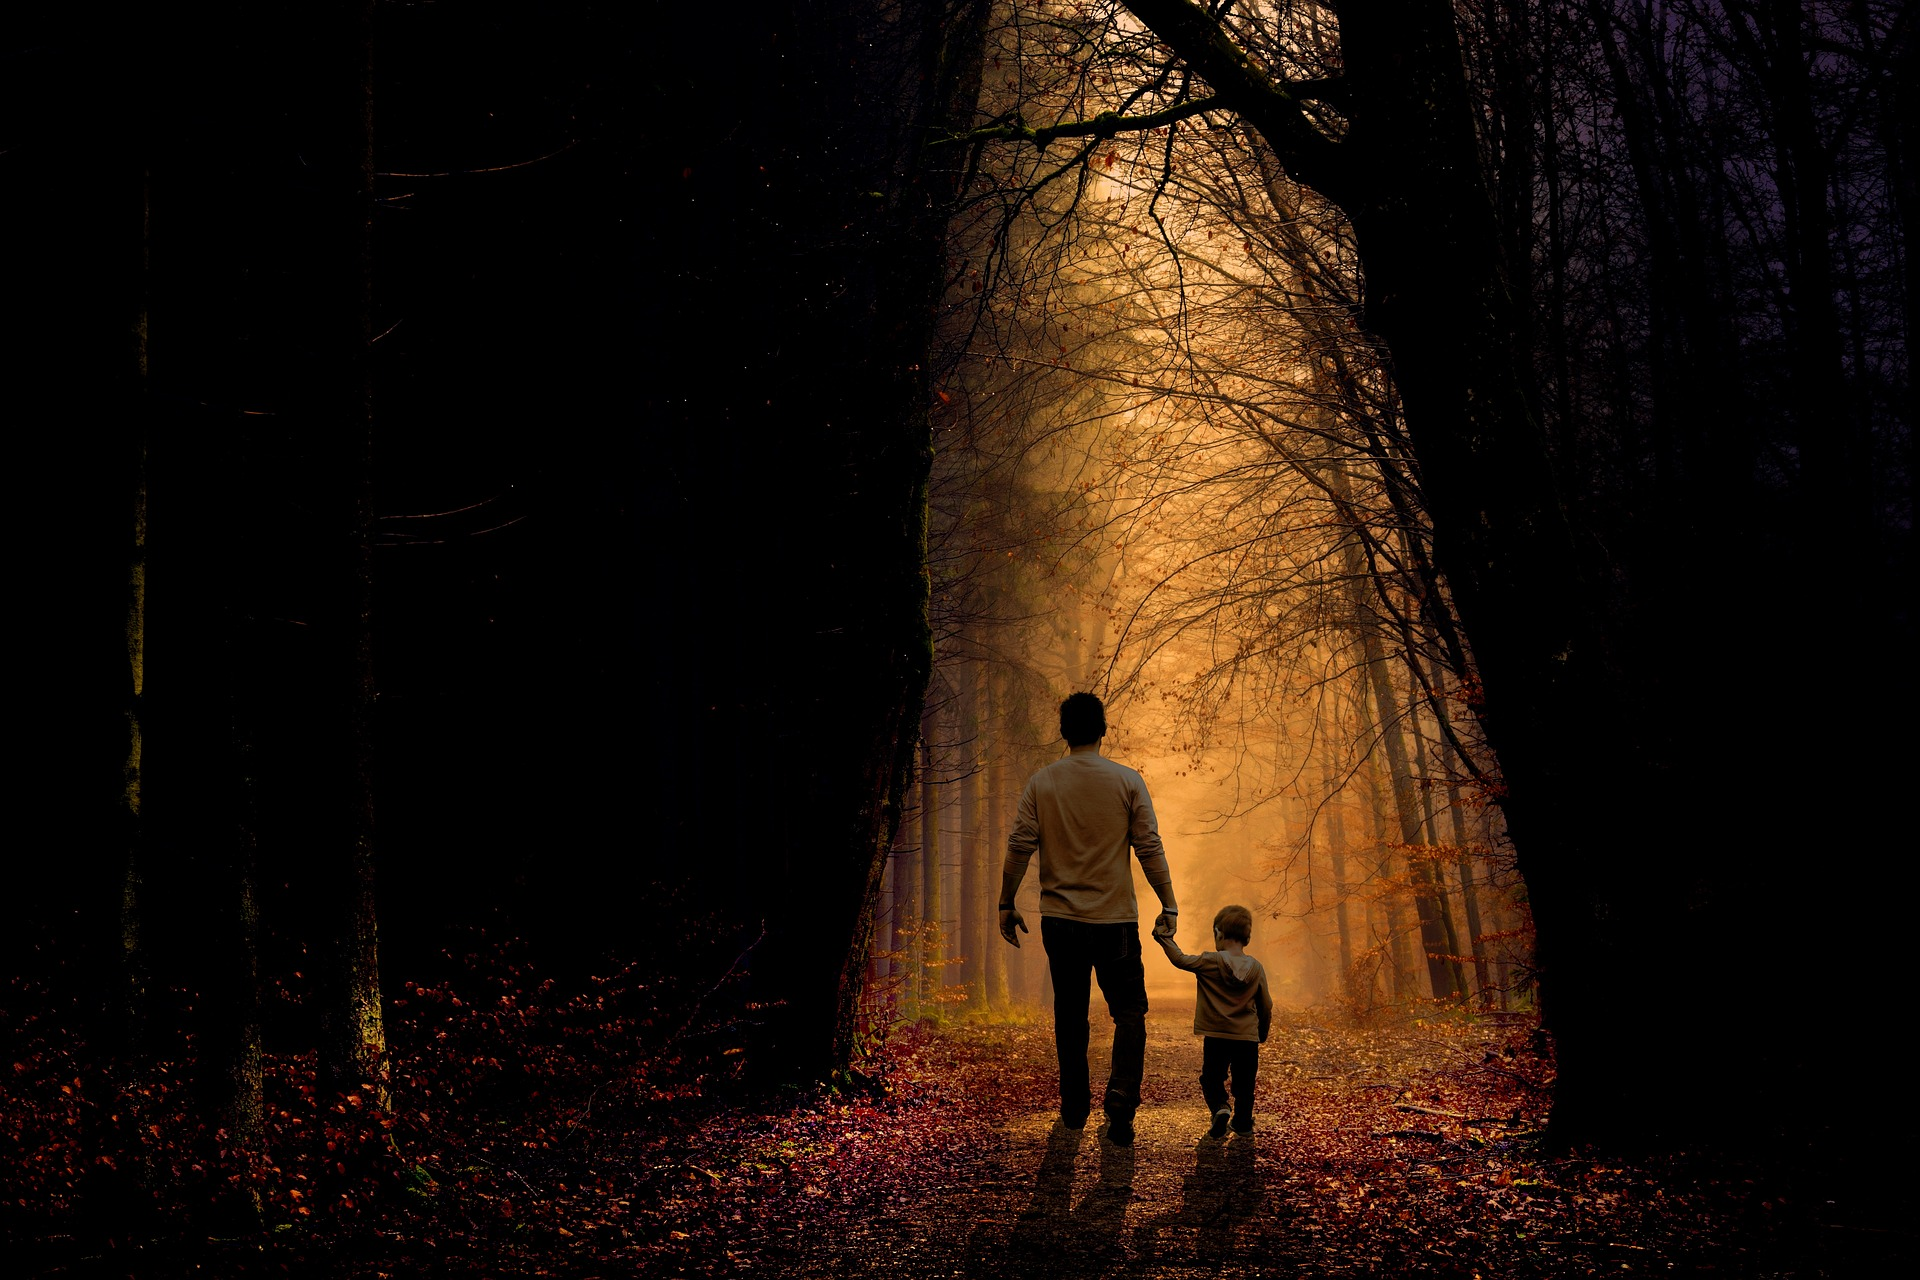 Image of a father holding a child's hand walking through an autumnal forest